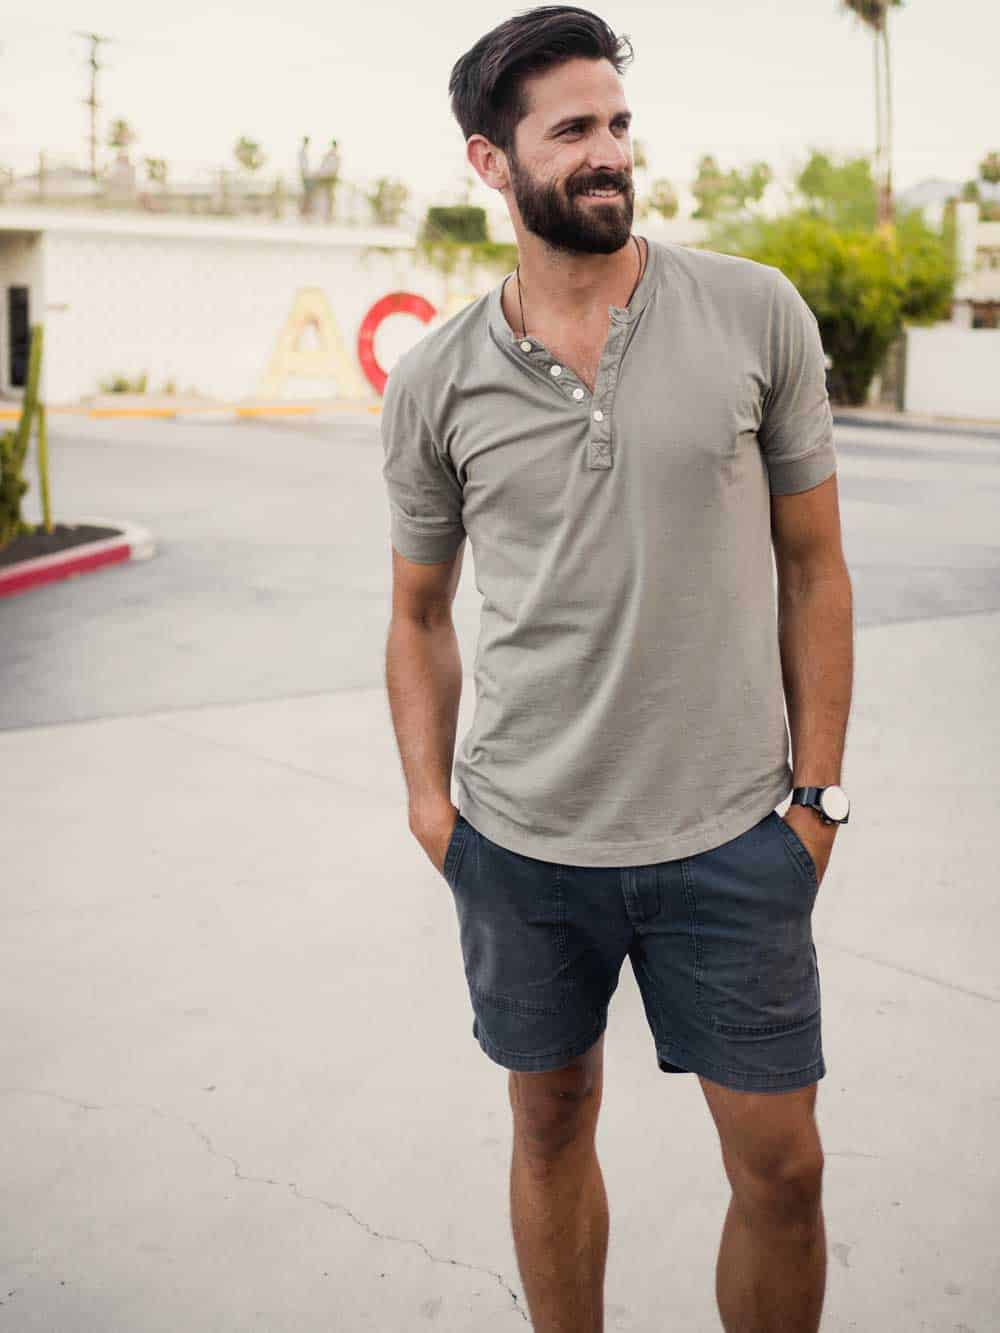 A man standing in a parking lot with a short sleeve henley